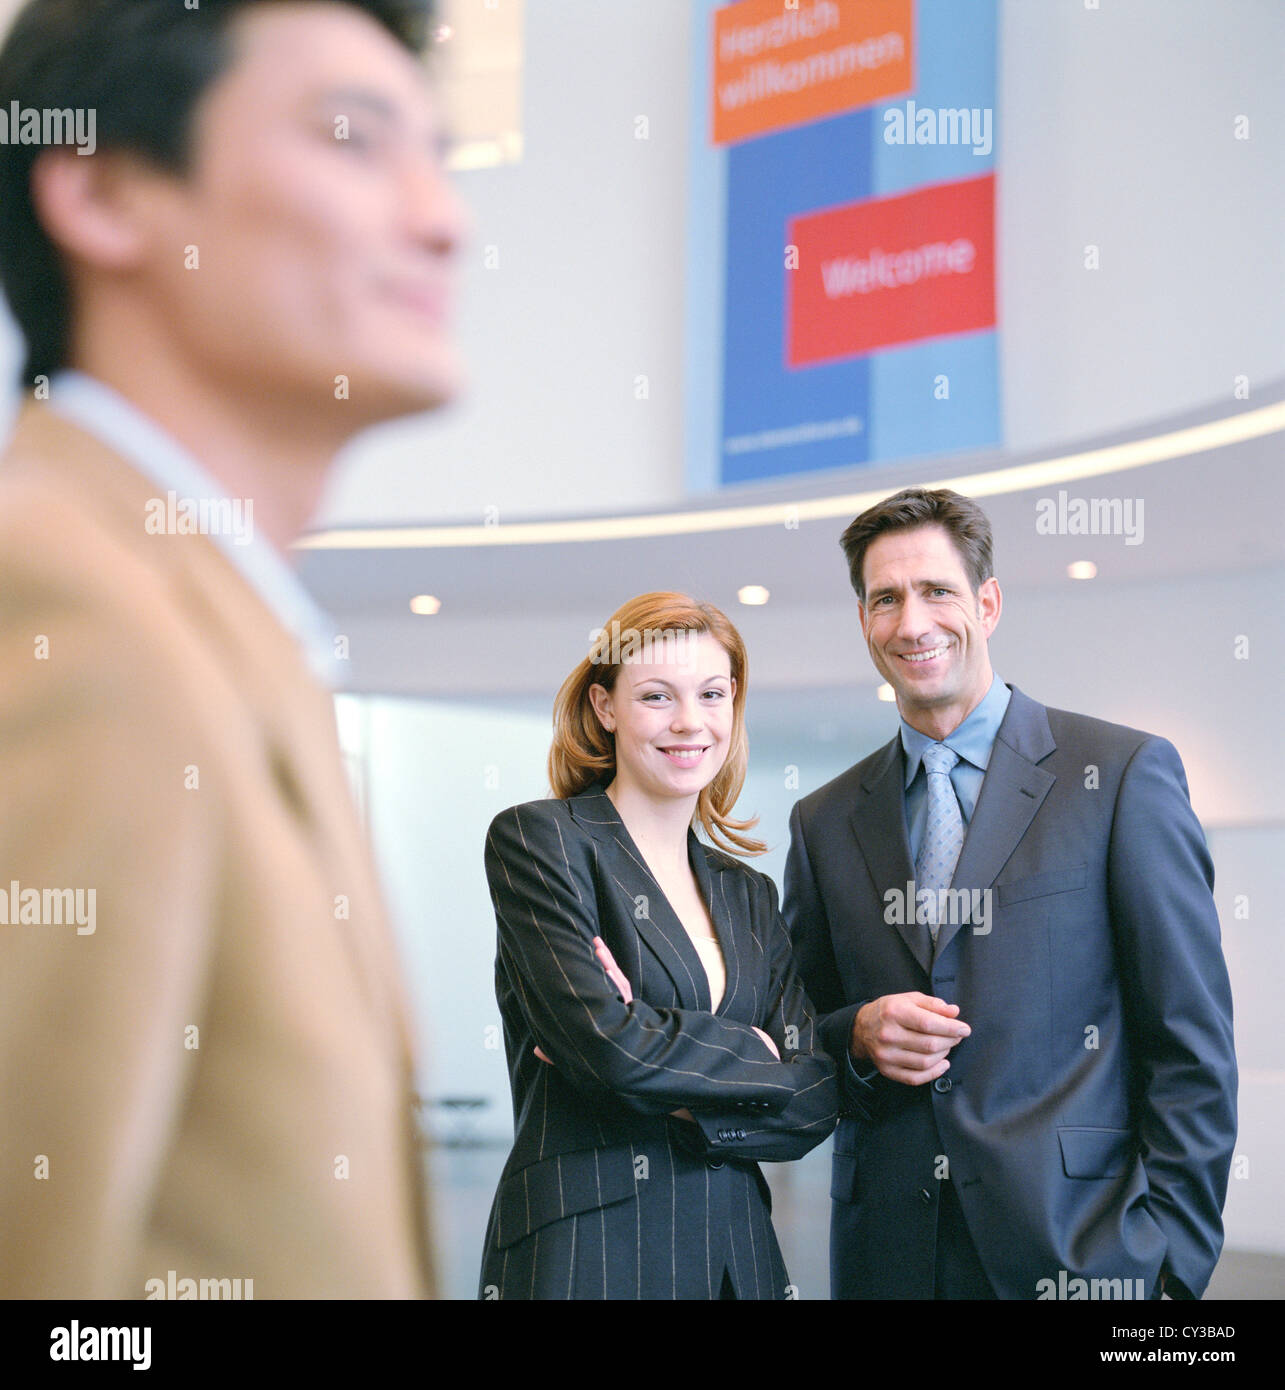 manager business man woman group License free except ads and outdoor billboards Stock Photo